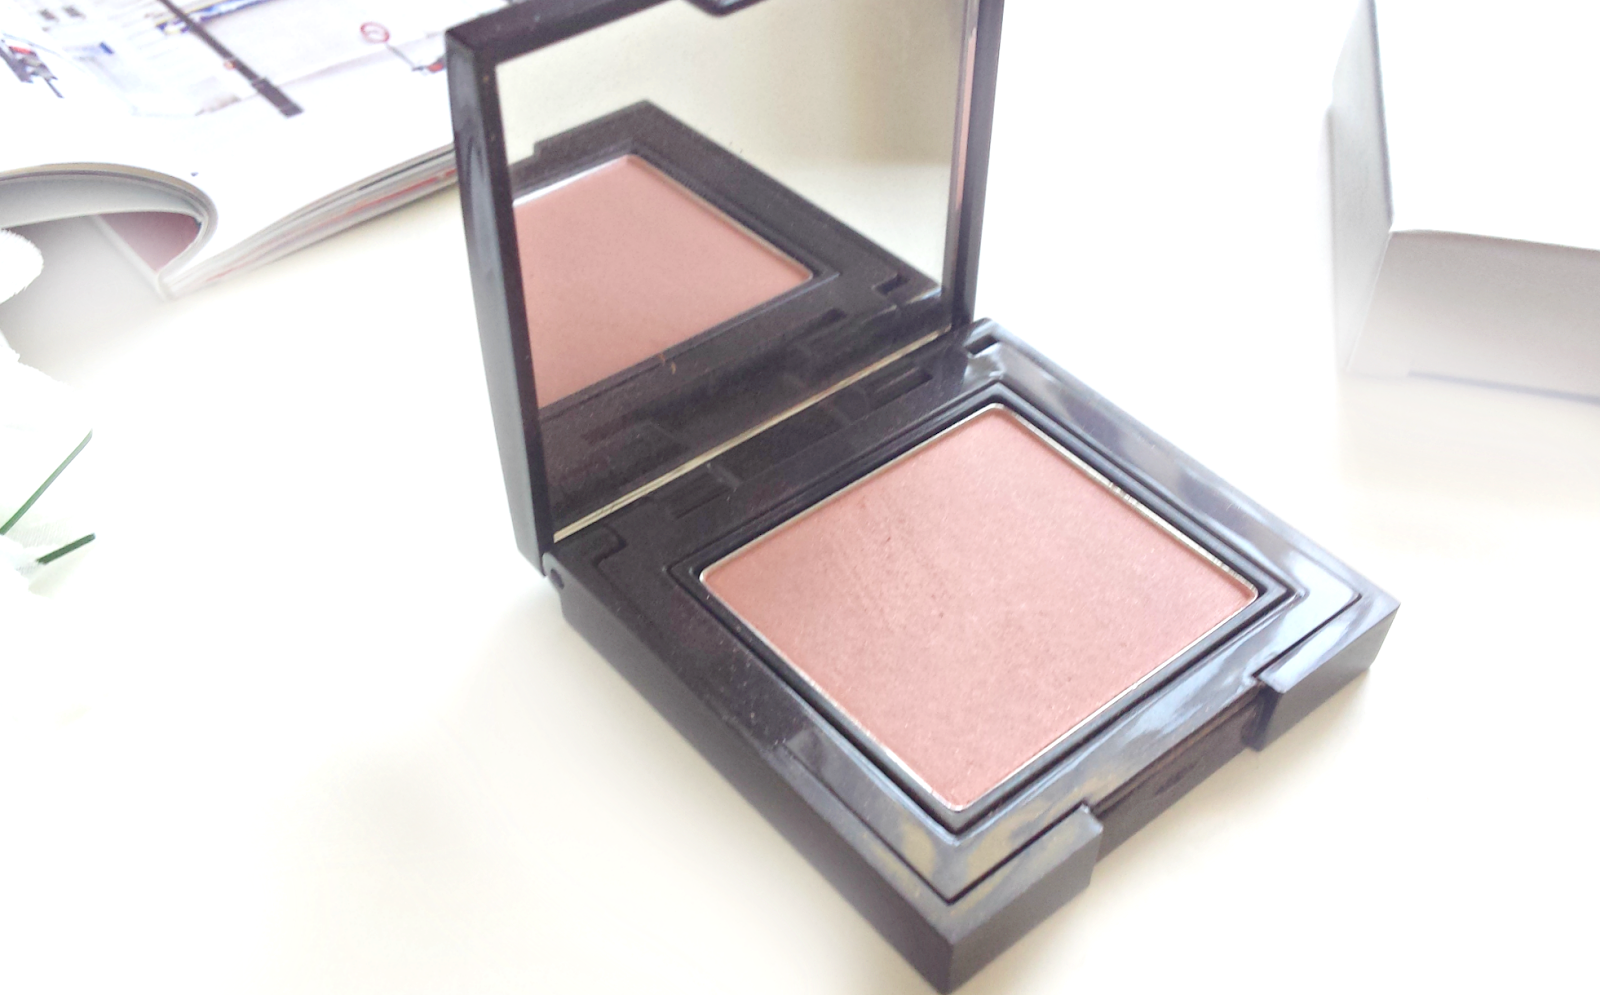 Laura Mercier Second Skin Cheek Colour Review